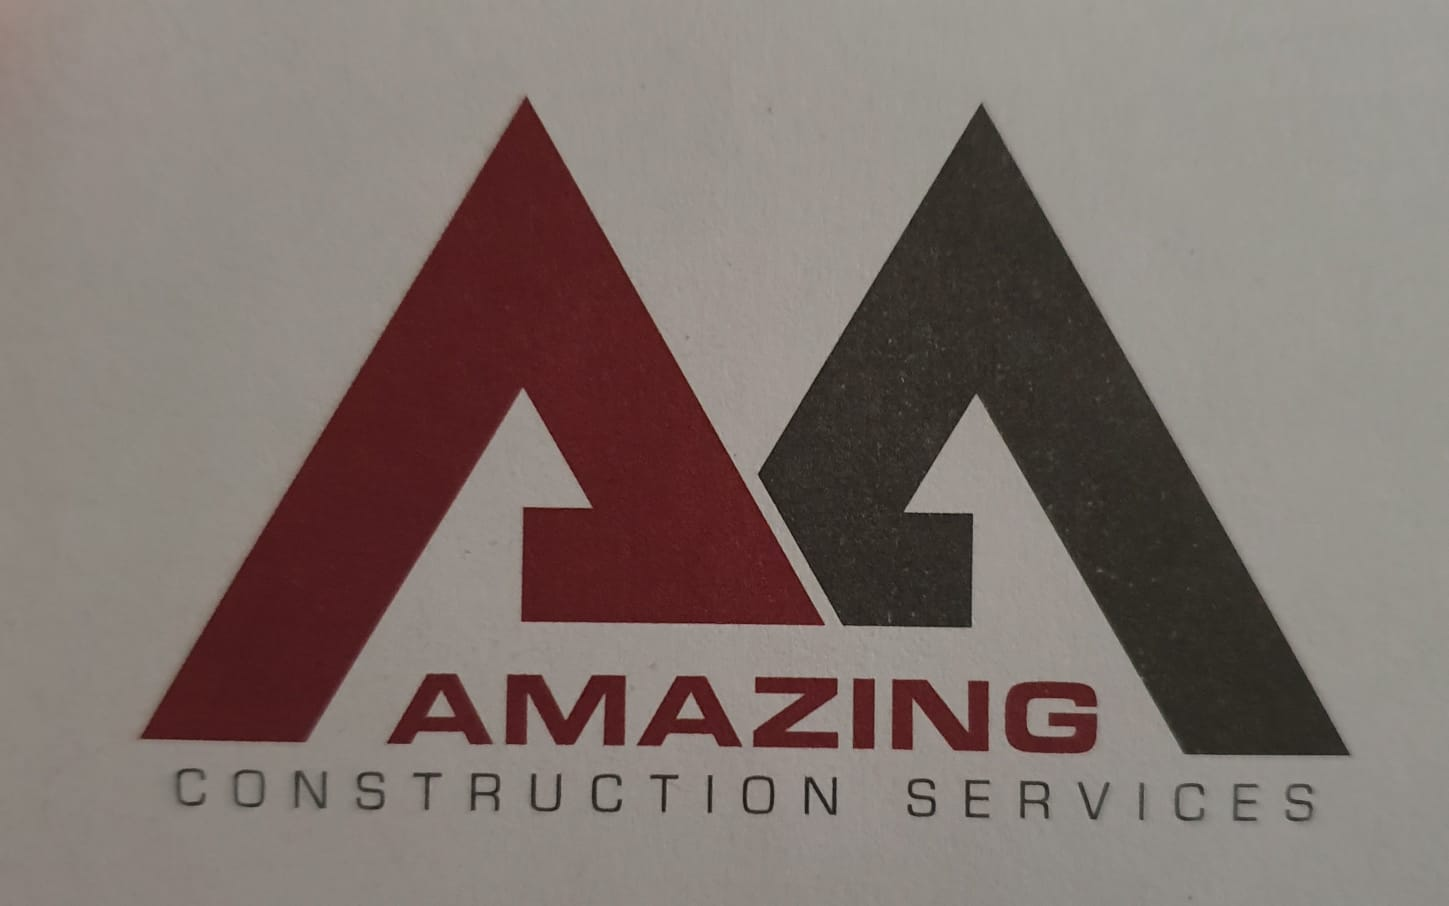 AA Amazing Construction Services